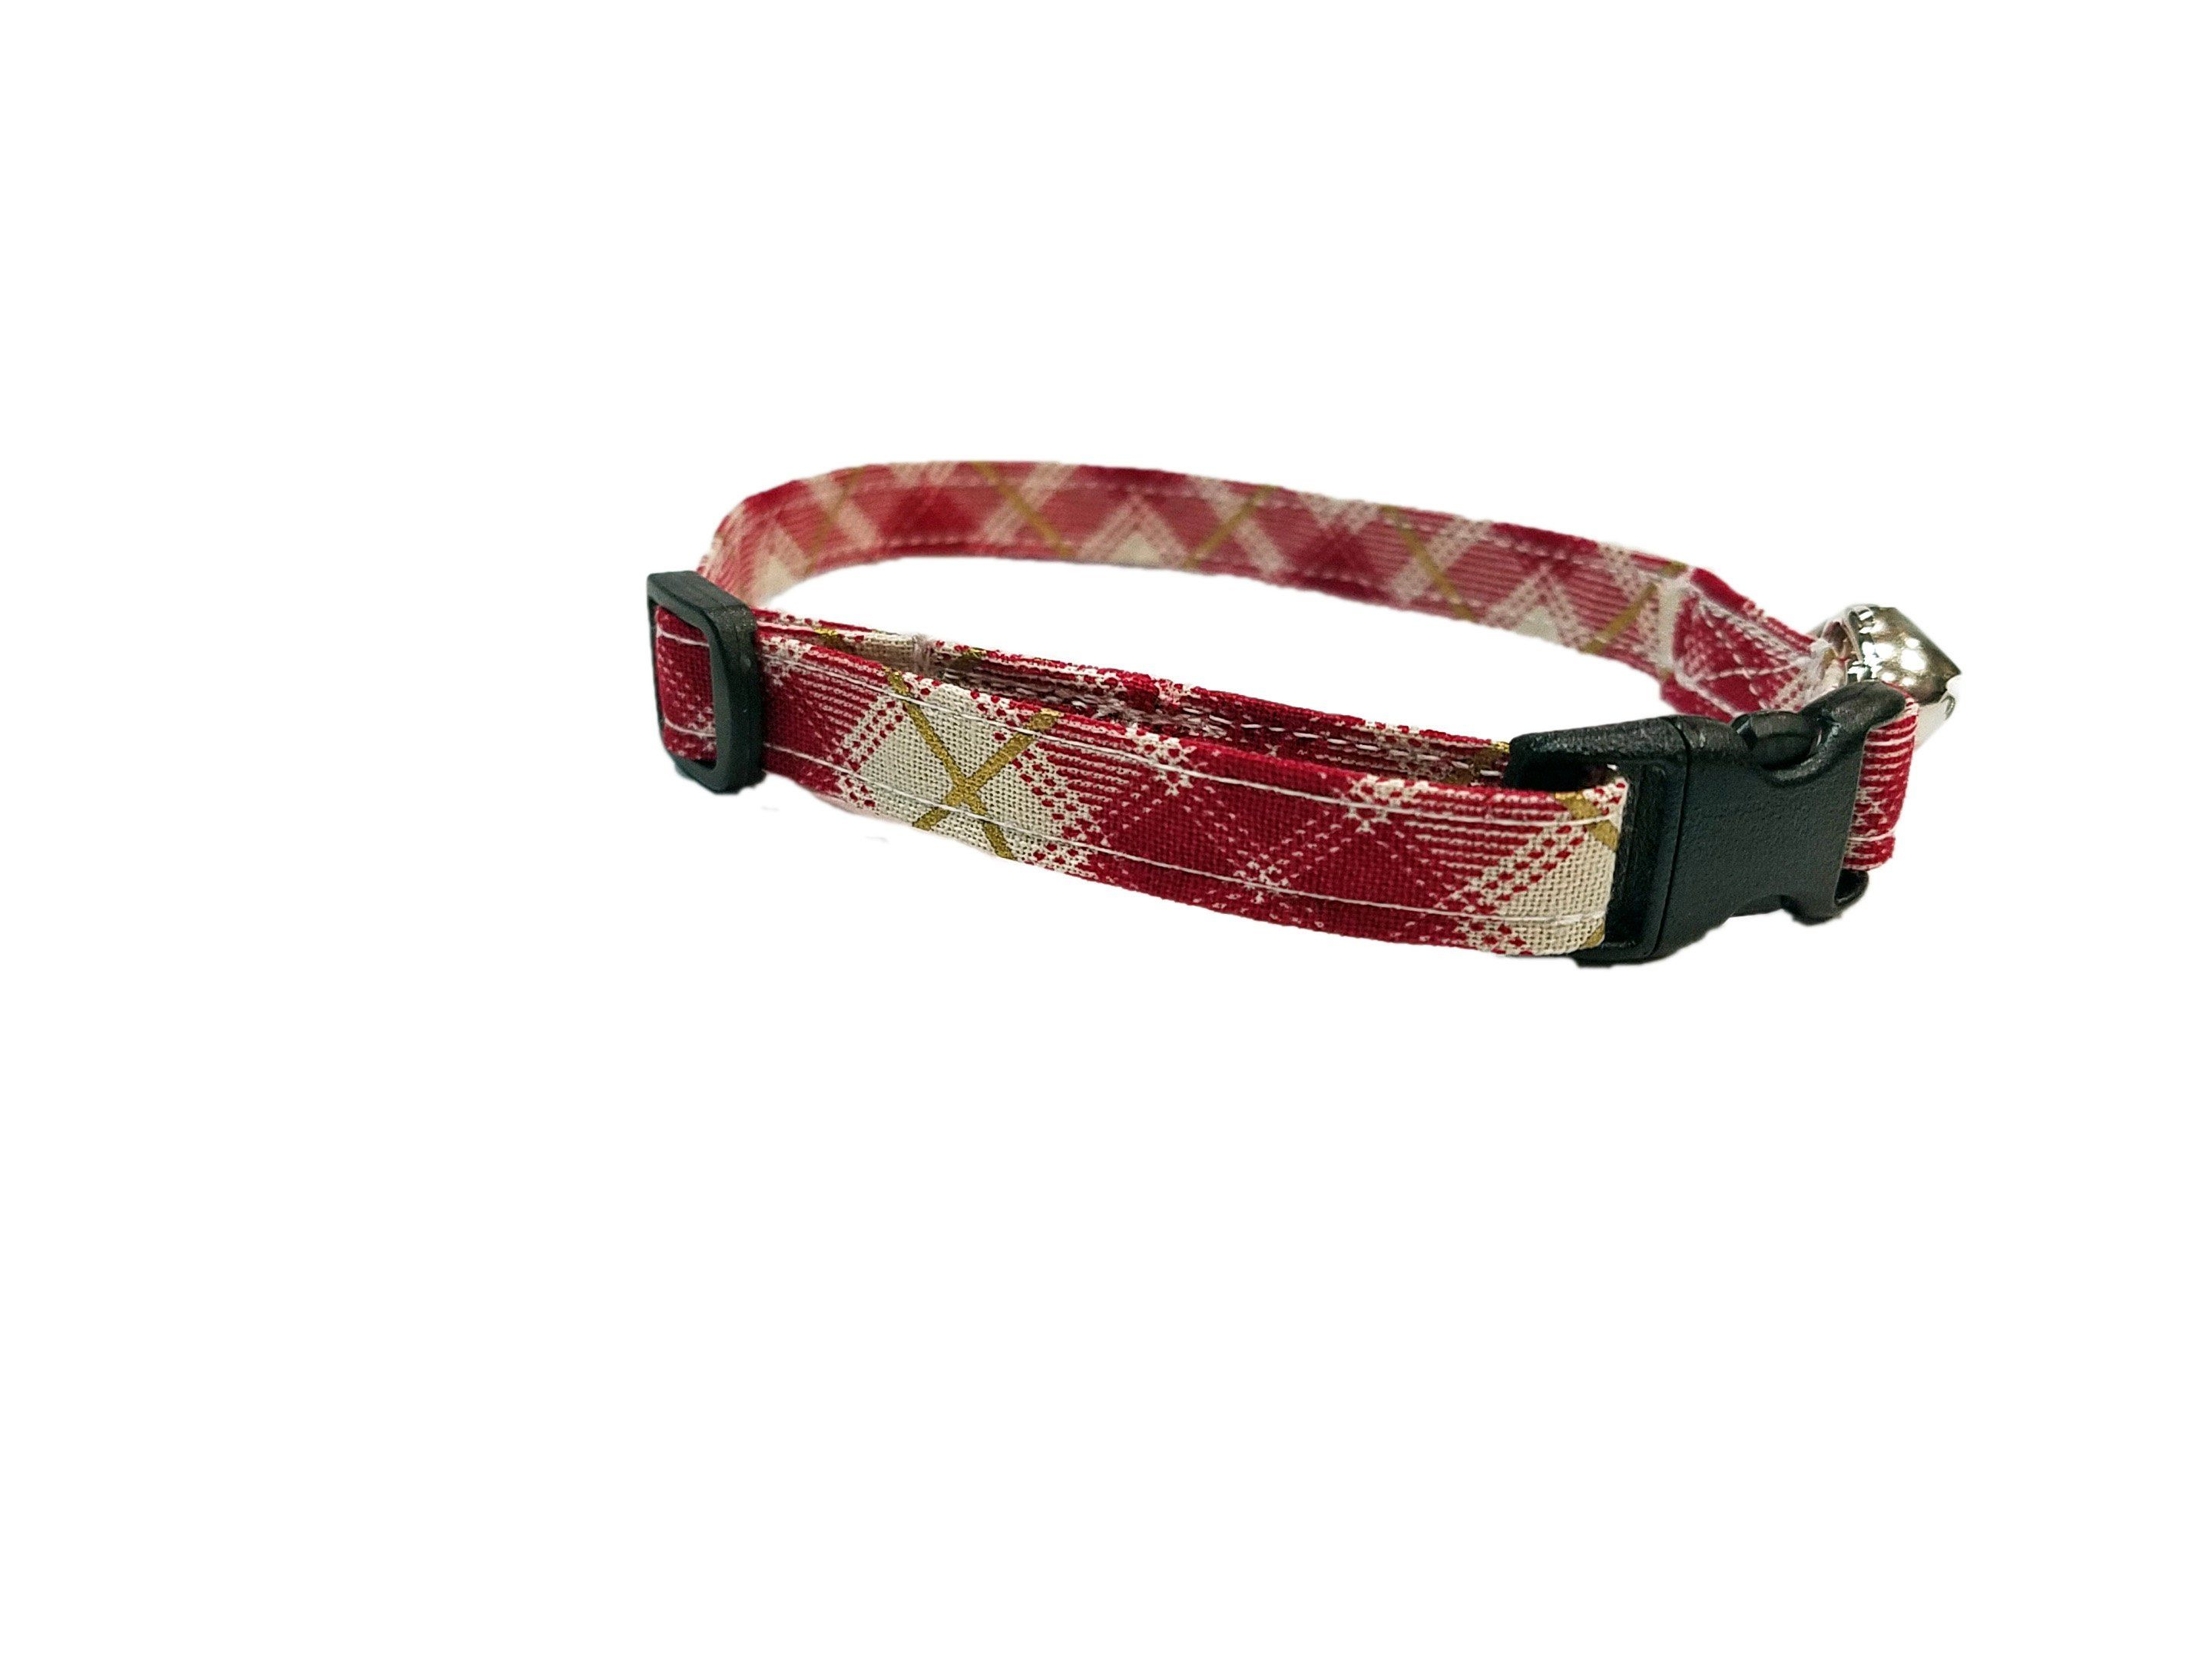 Red Gold Bias Plaid Cat Or Kitten Collar Adjustable Christmas Holiday White Preppy Cotton Fabric With Bell An Kitten Collars Cat Collars Christmas Cat Collar